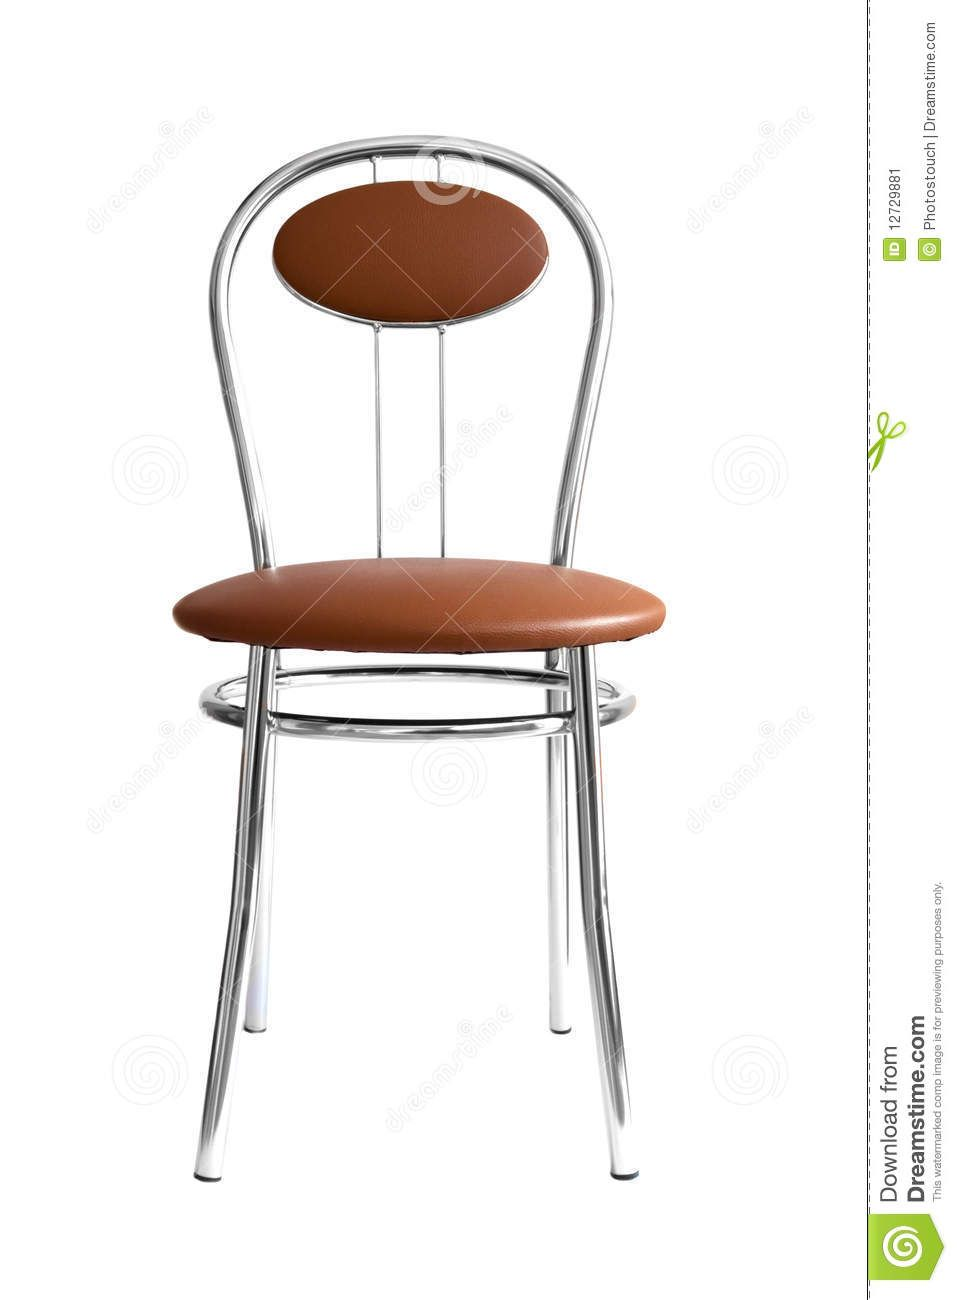 77 Reference Of Folding Chair White Background In 2020 Folding Chair Chair Folding Lounge Chair